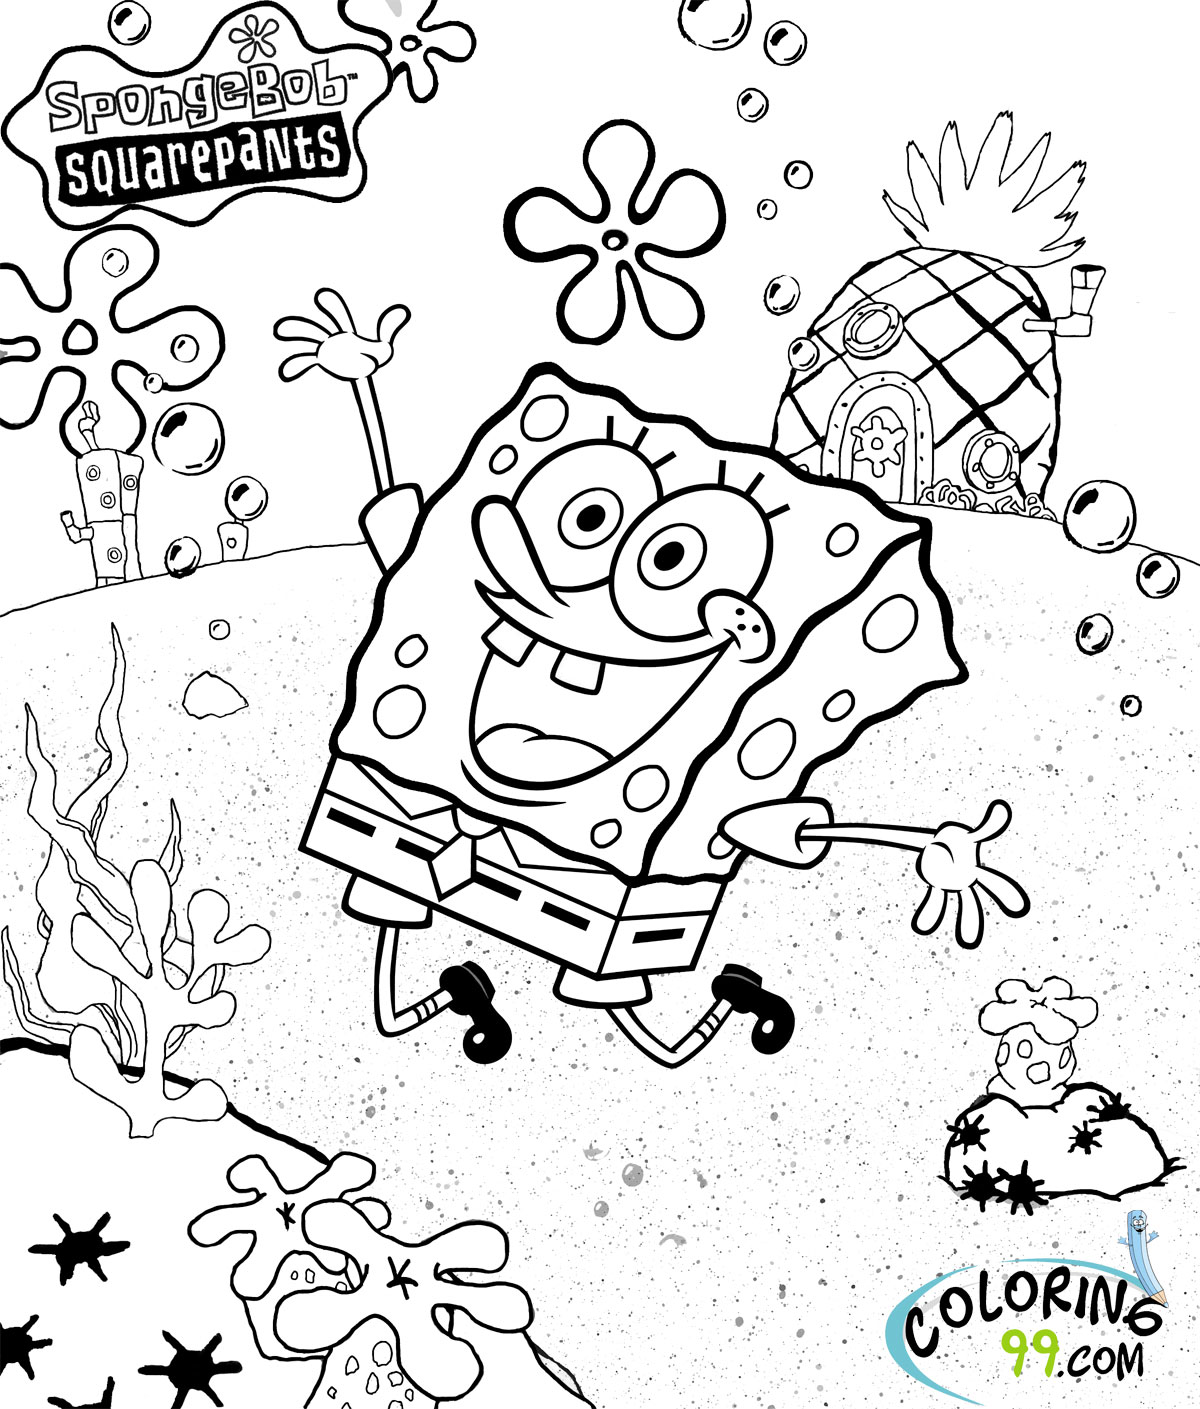 Spongebob Squarepants Coloring Pages Minister Coloring Coloring Pages Sponge Bob